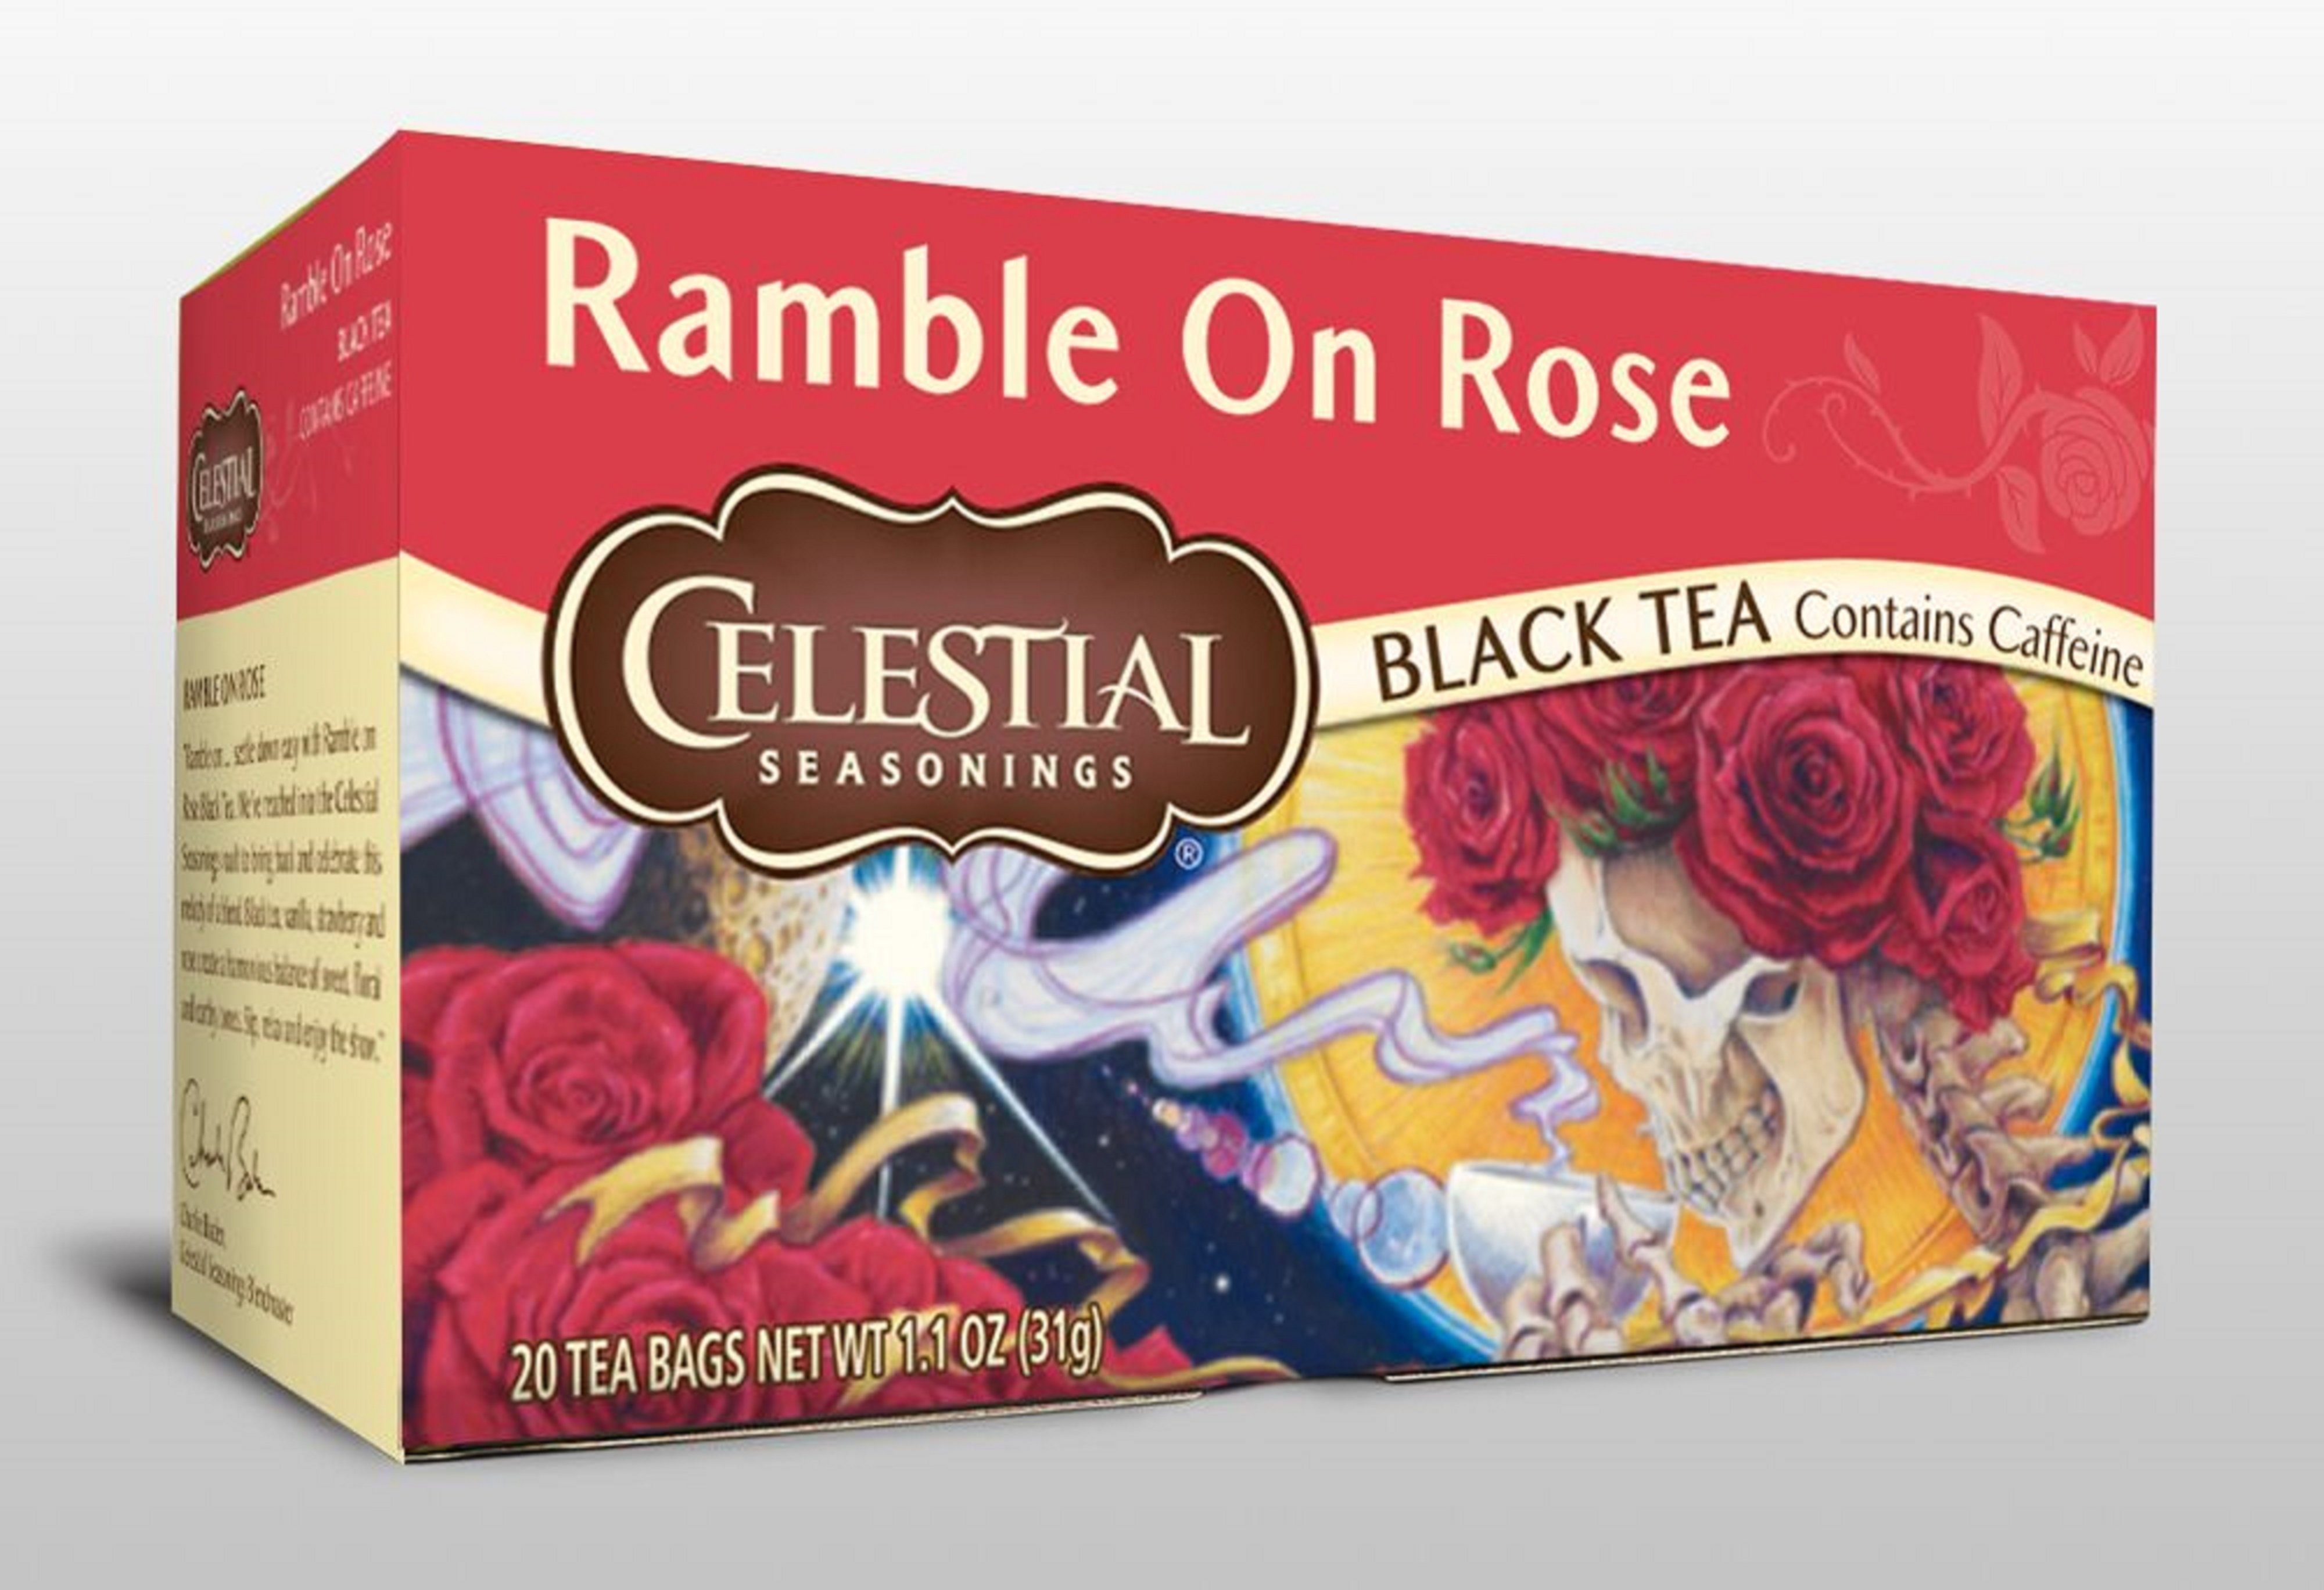 CELESTIAL SEASONINGS AND HEADCOUNT TEAM UP TO RELEASE MUSIC THEMED TEAS